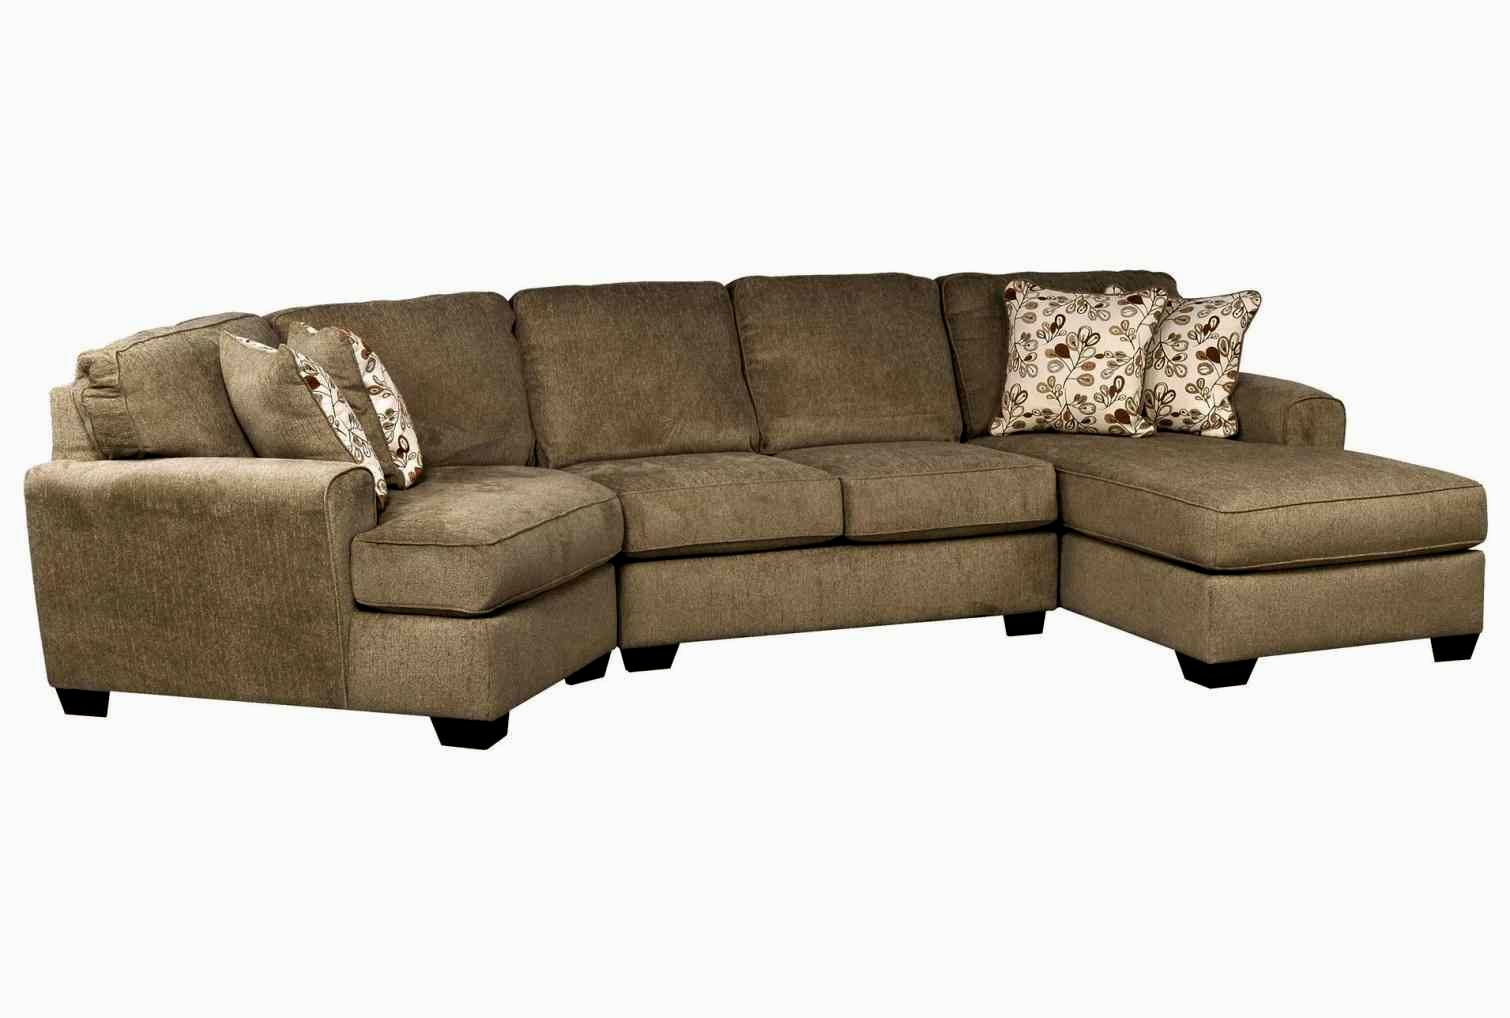 awesome single recliner sofa inspiration-Best Single Recliner sofa Architecture